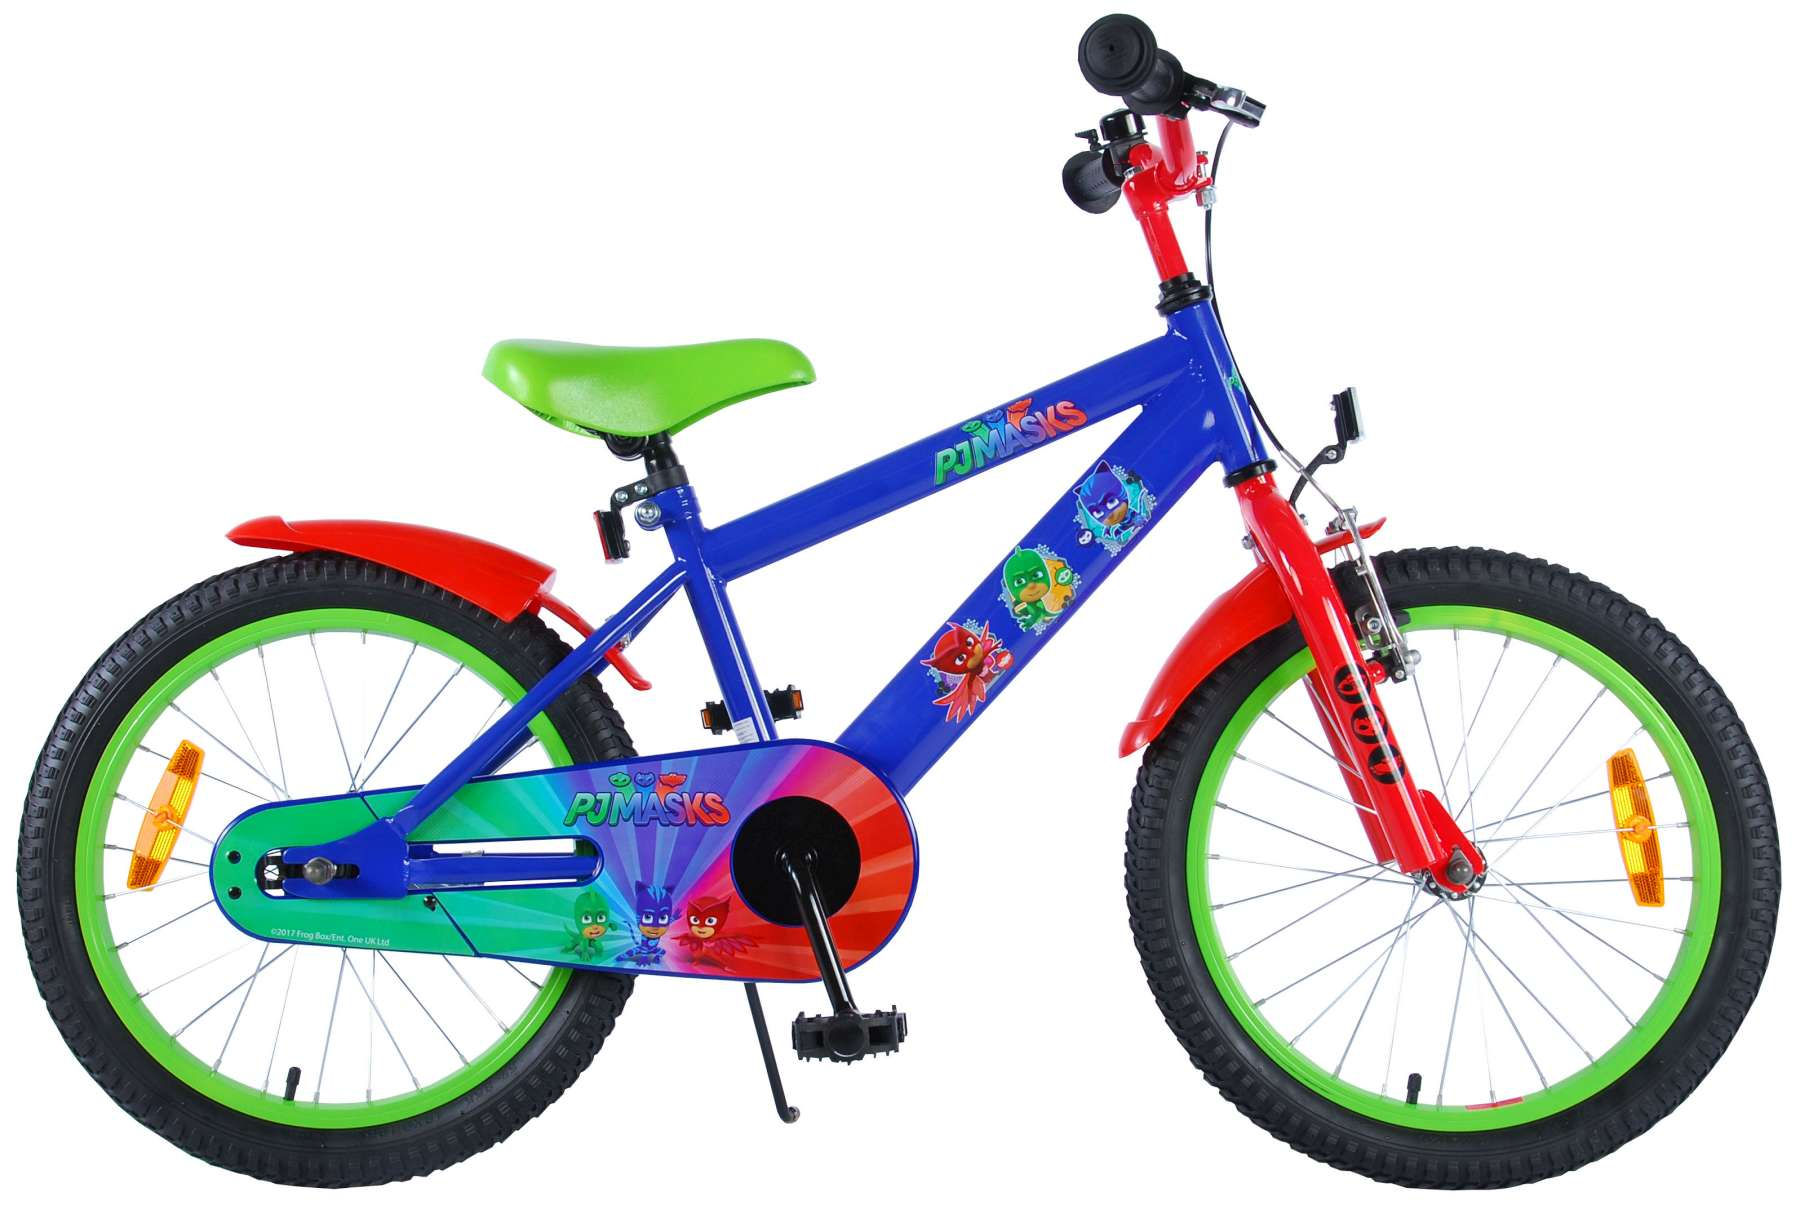 PJ Masks 18 inch boys bicycle